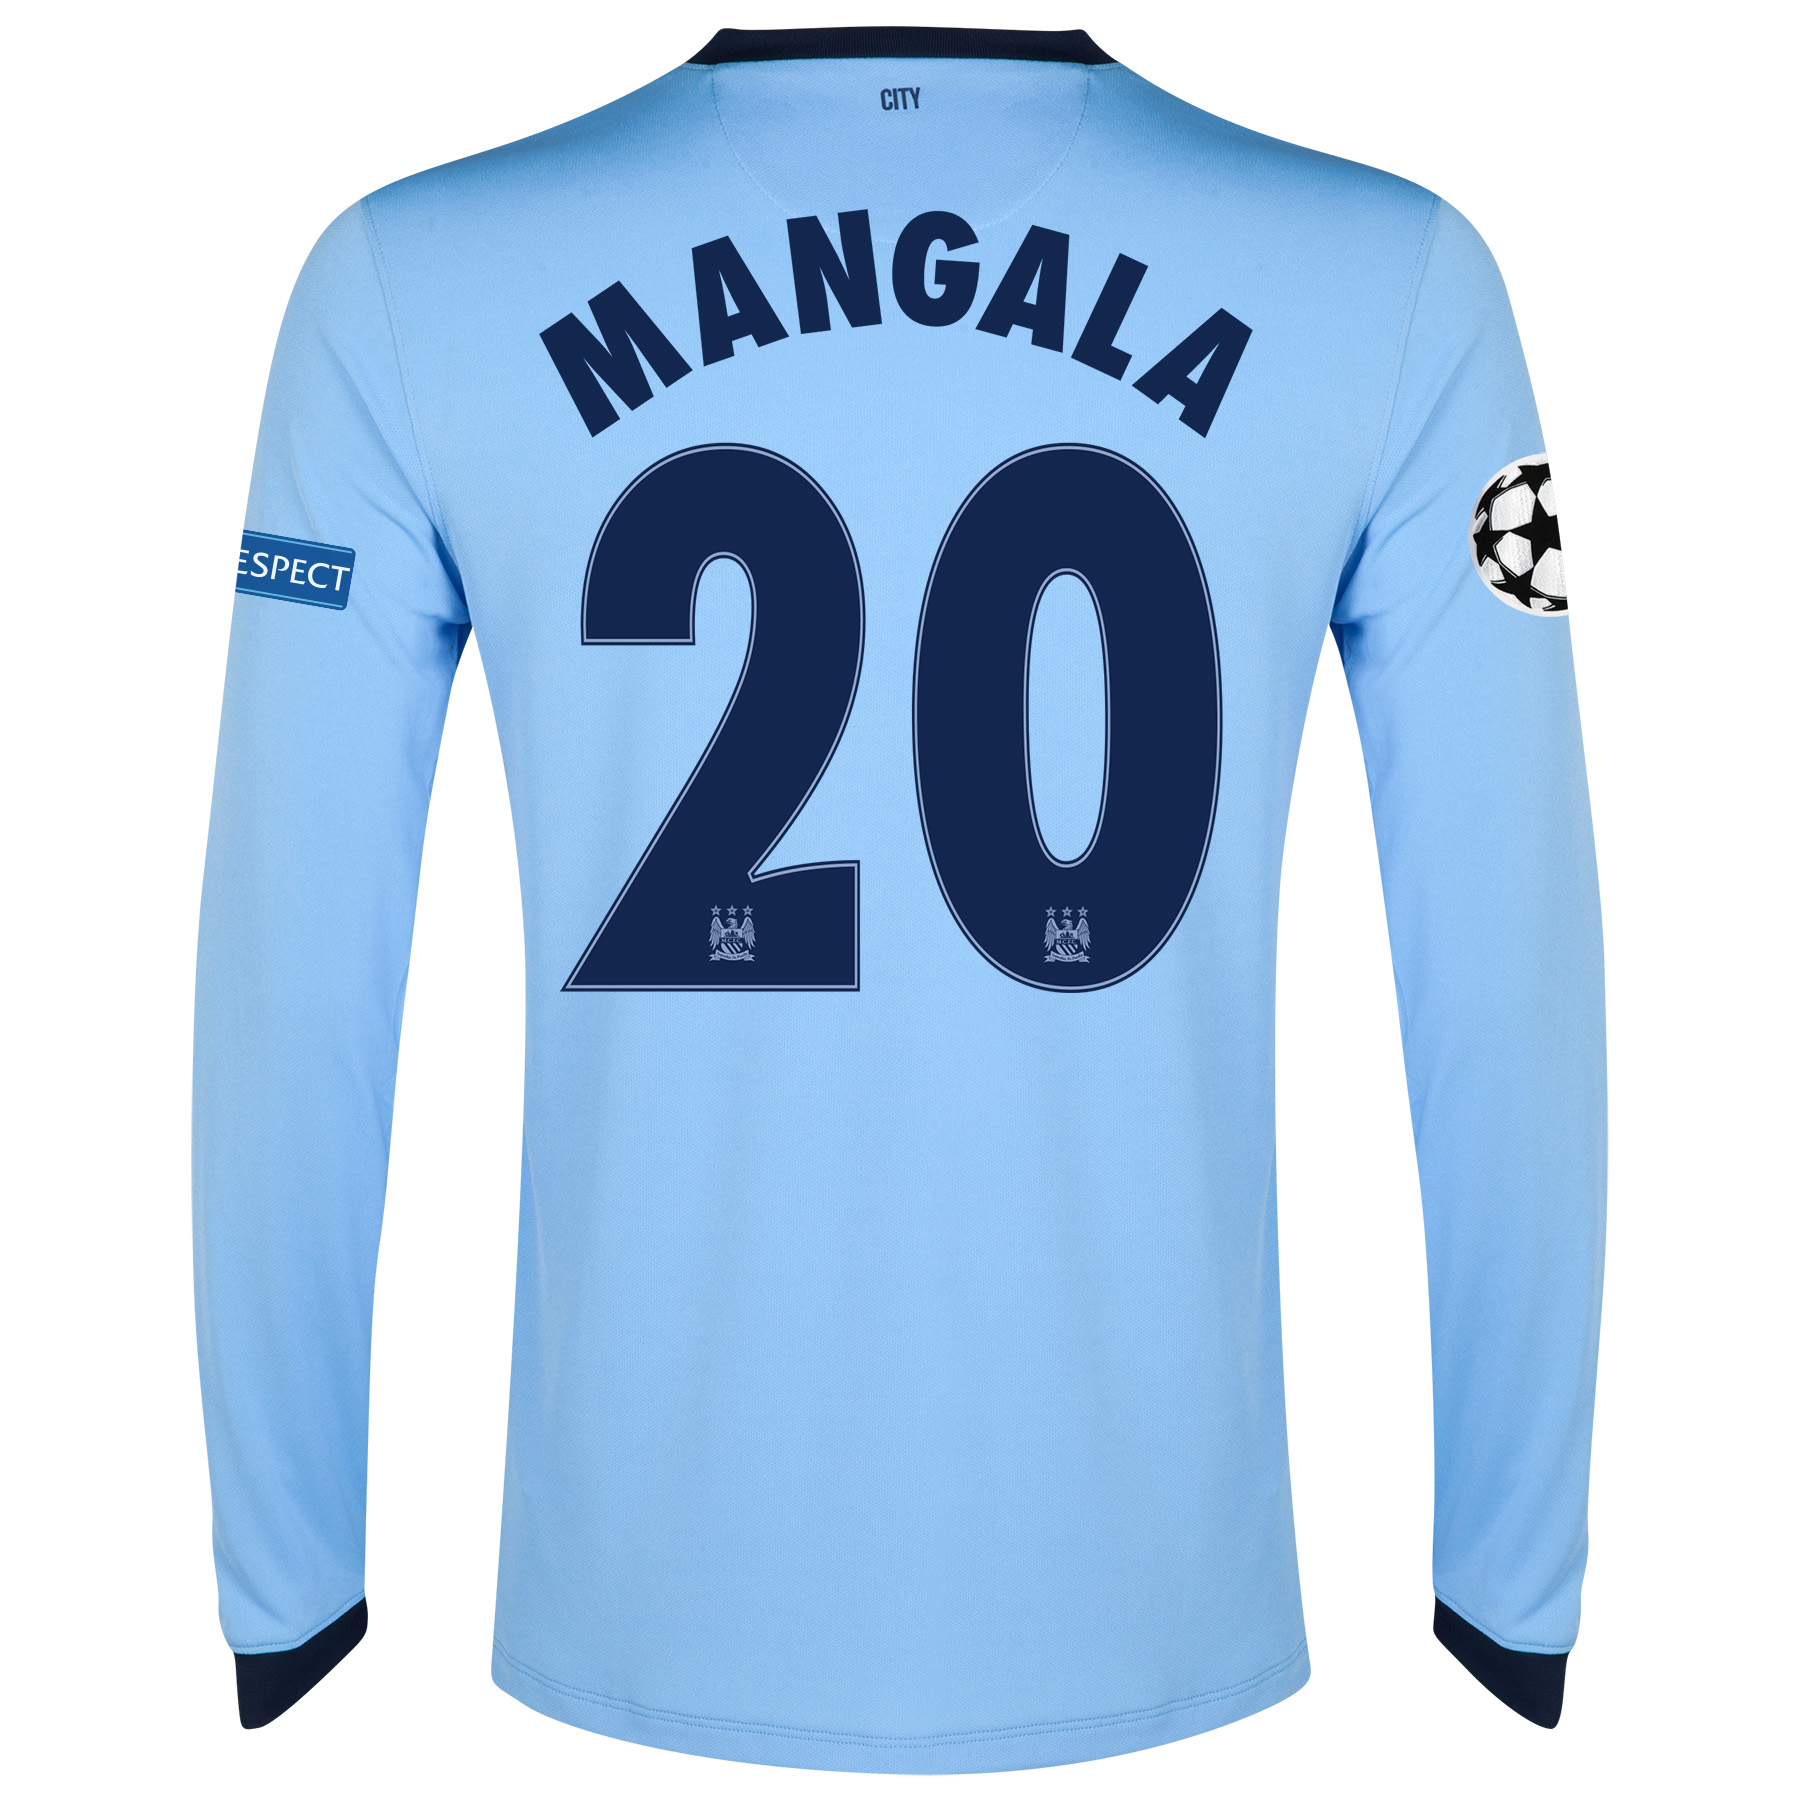 Manchester City UEFA Champions League Home Shirt 2014/15 - Long Sleeve - Kids Sky Blue with Mangala 20 printing